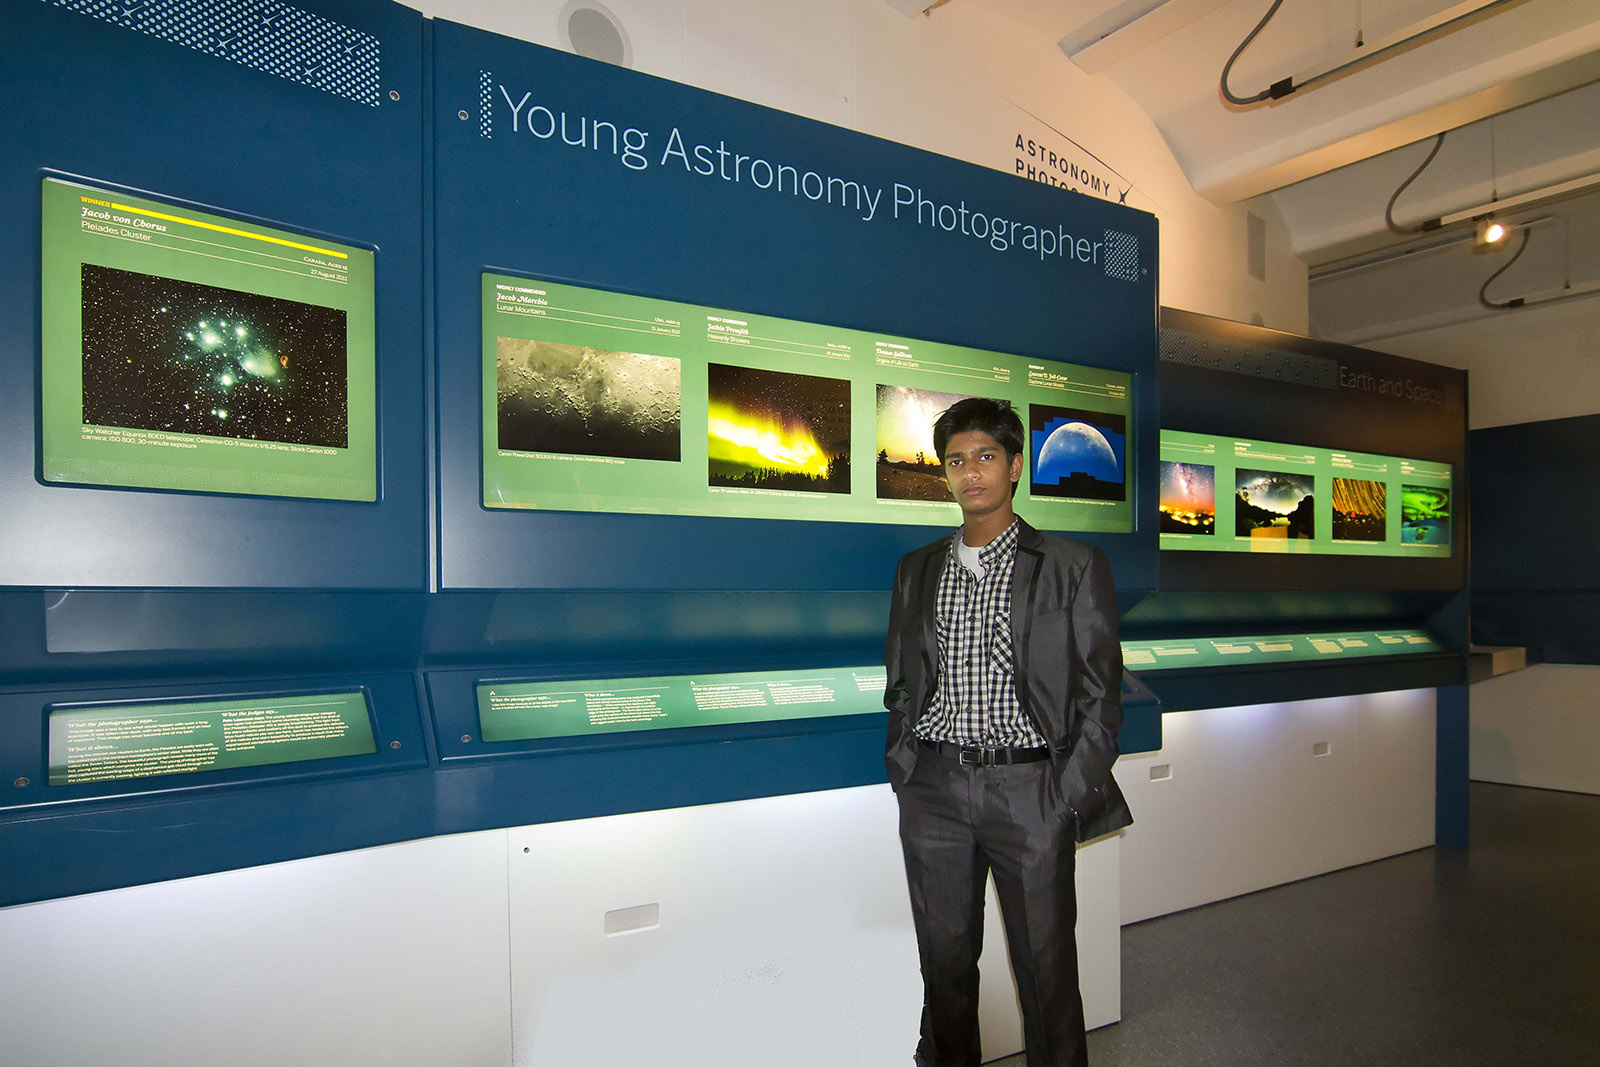 In the gallery of Award winning photographs